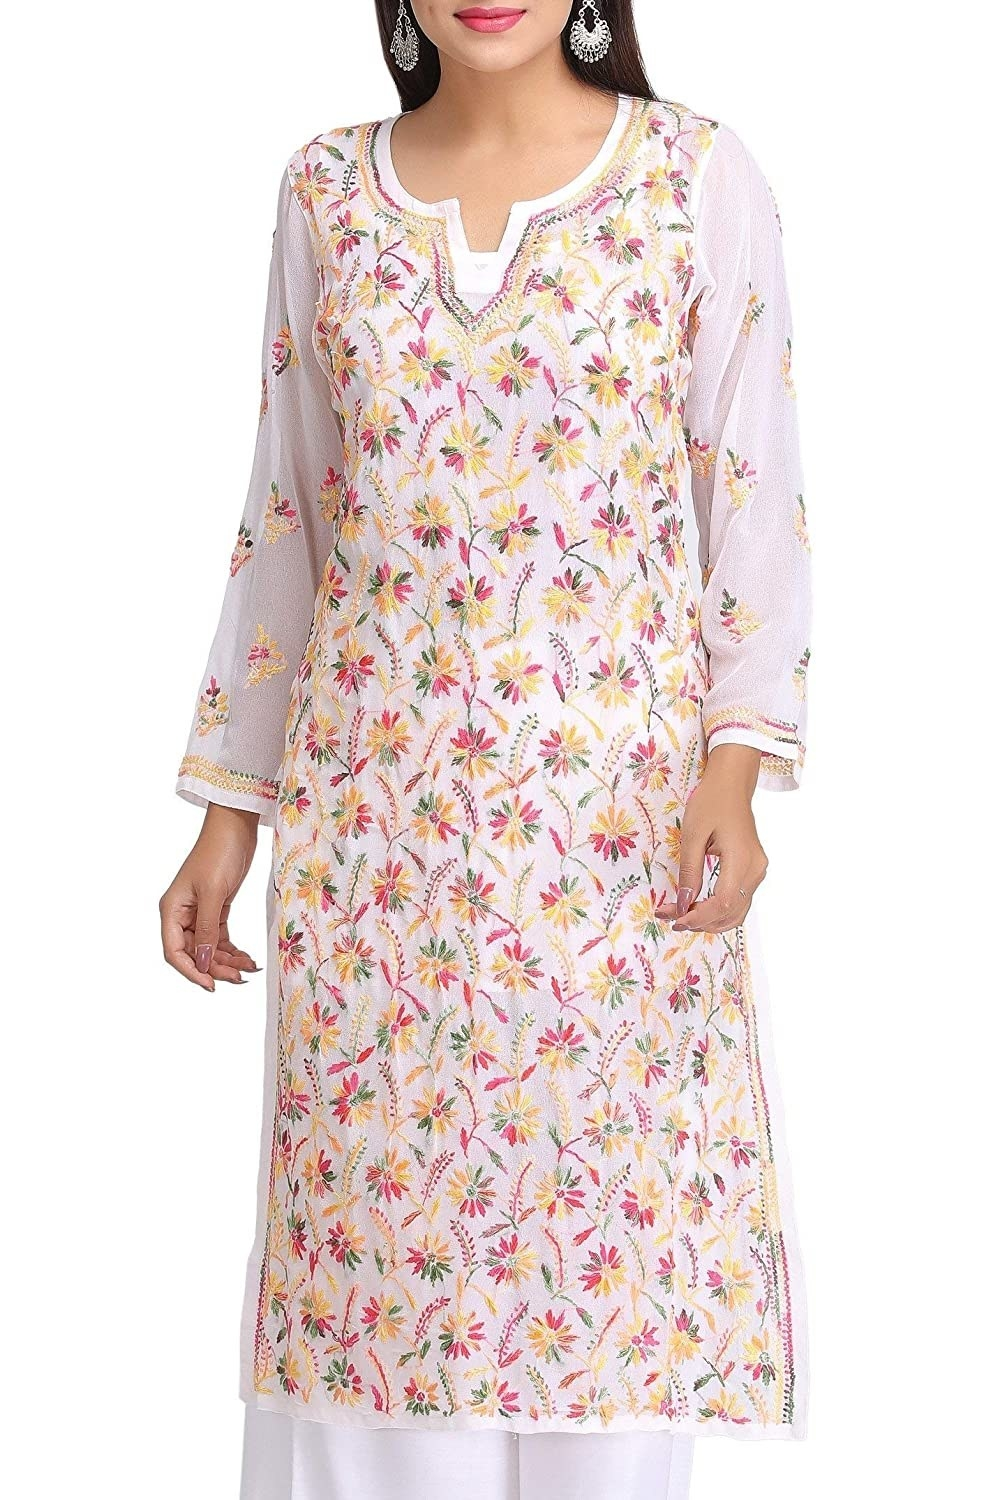 A person wearing a white kurta with pink, yellow and green chikankari on it.